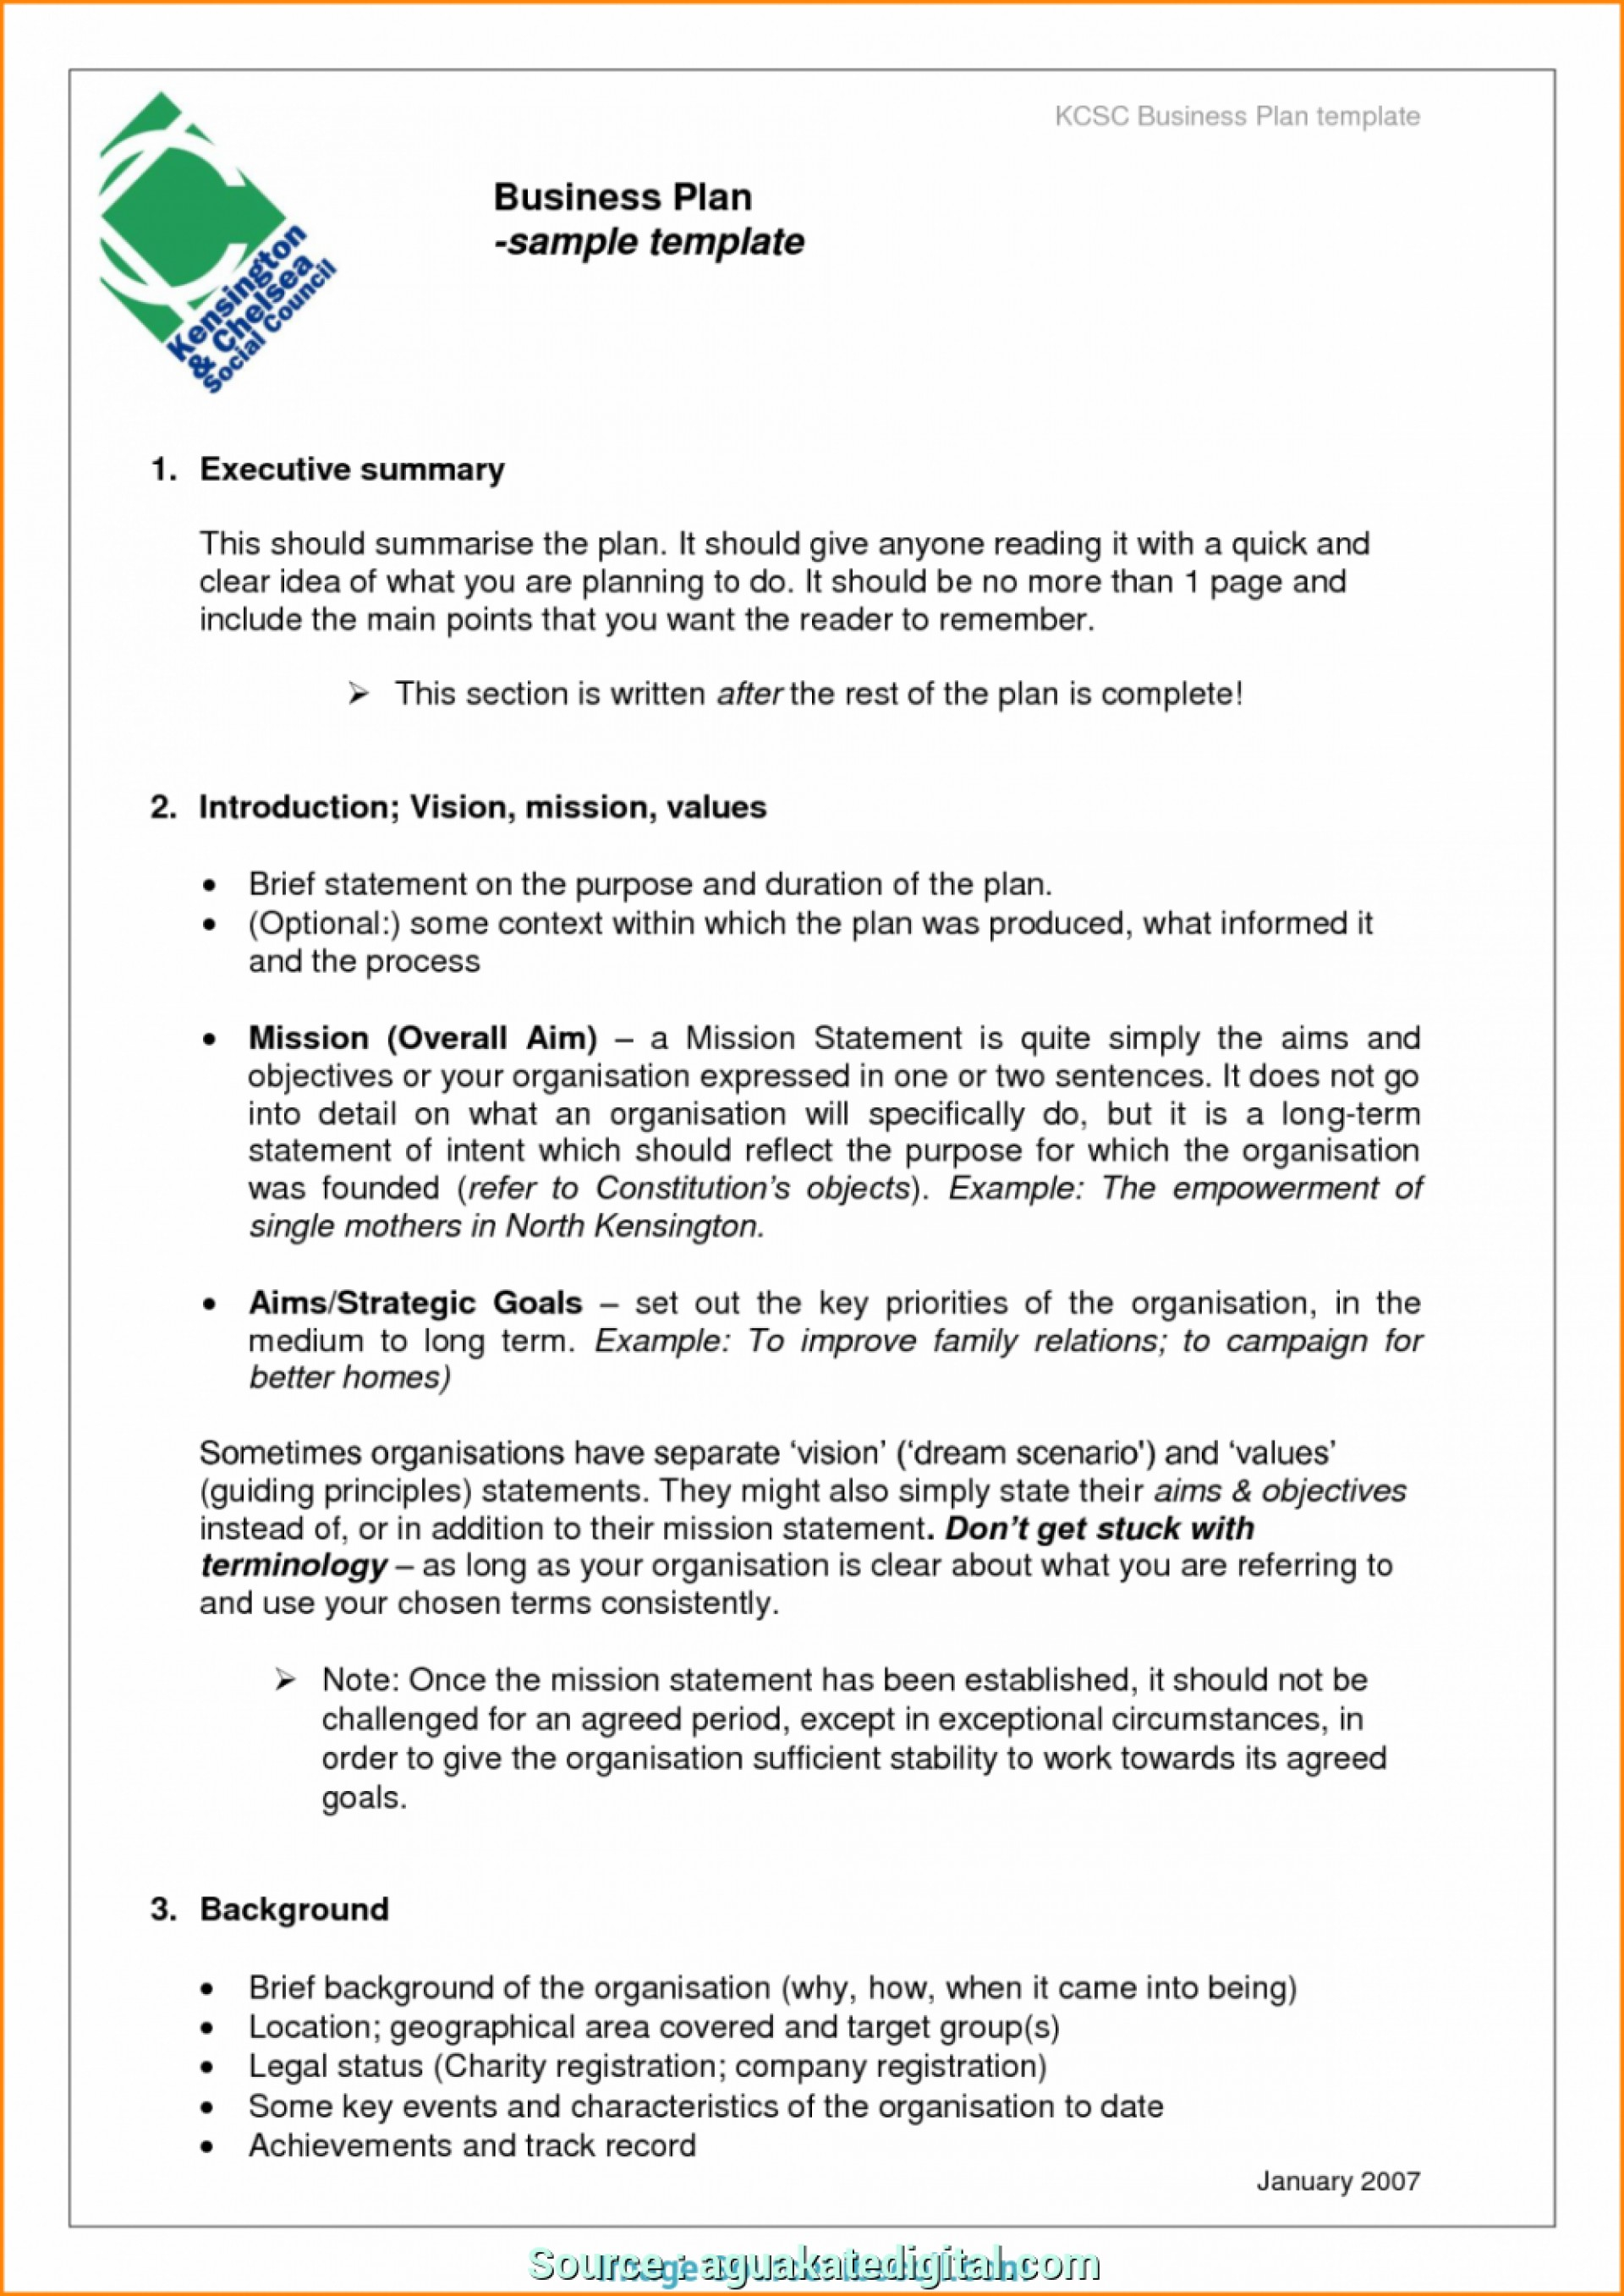 Amazing Bank Business Plan Sample Branch Manager Template Royal Intended For Standard Business Proposal Template